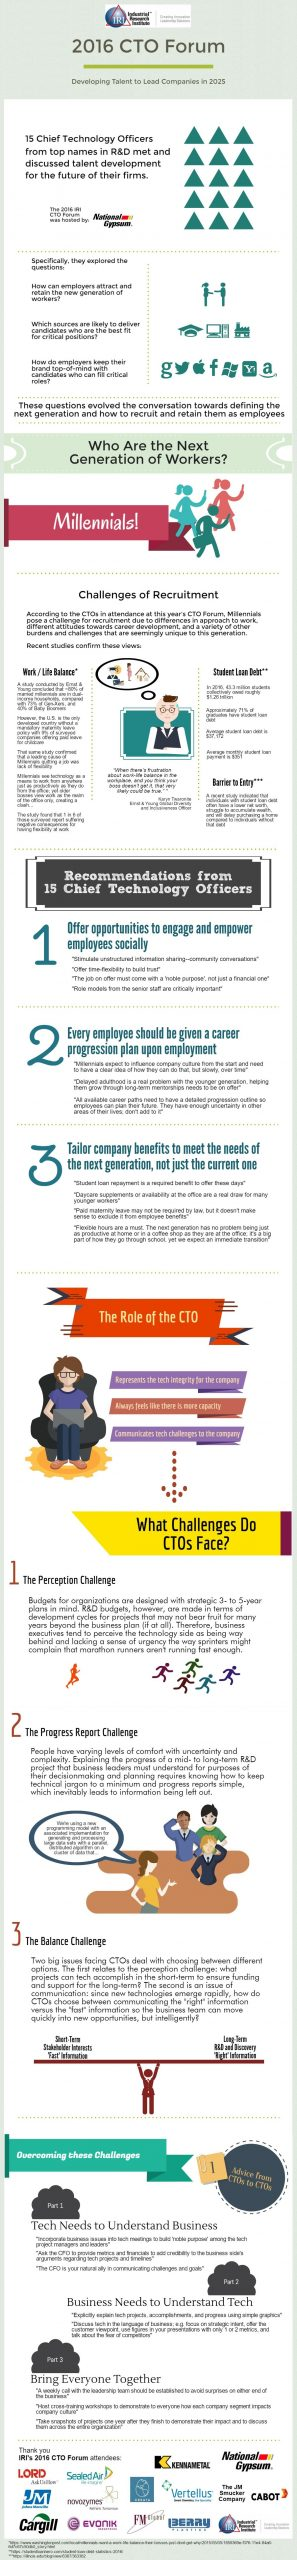 infographic from CTO forum 2016